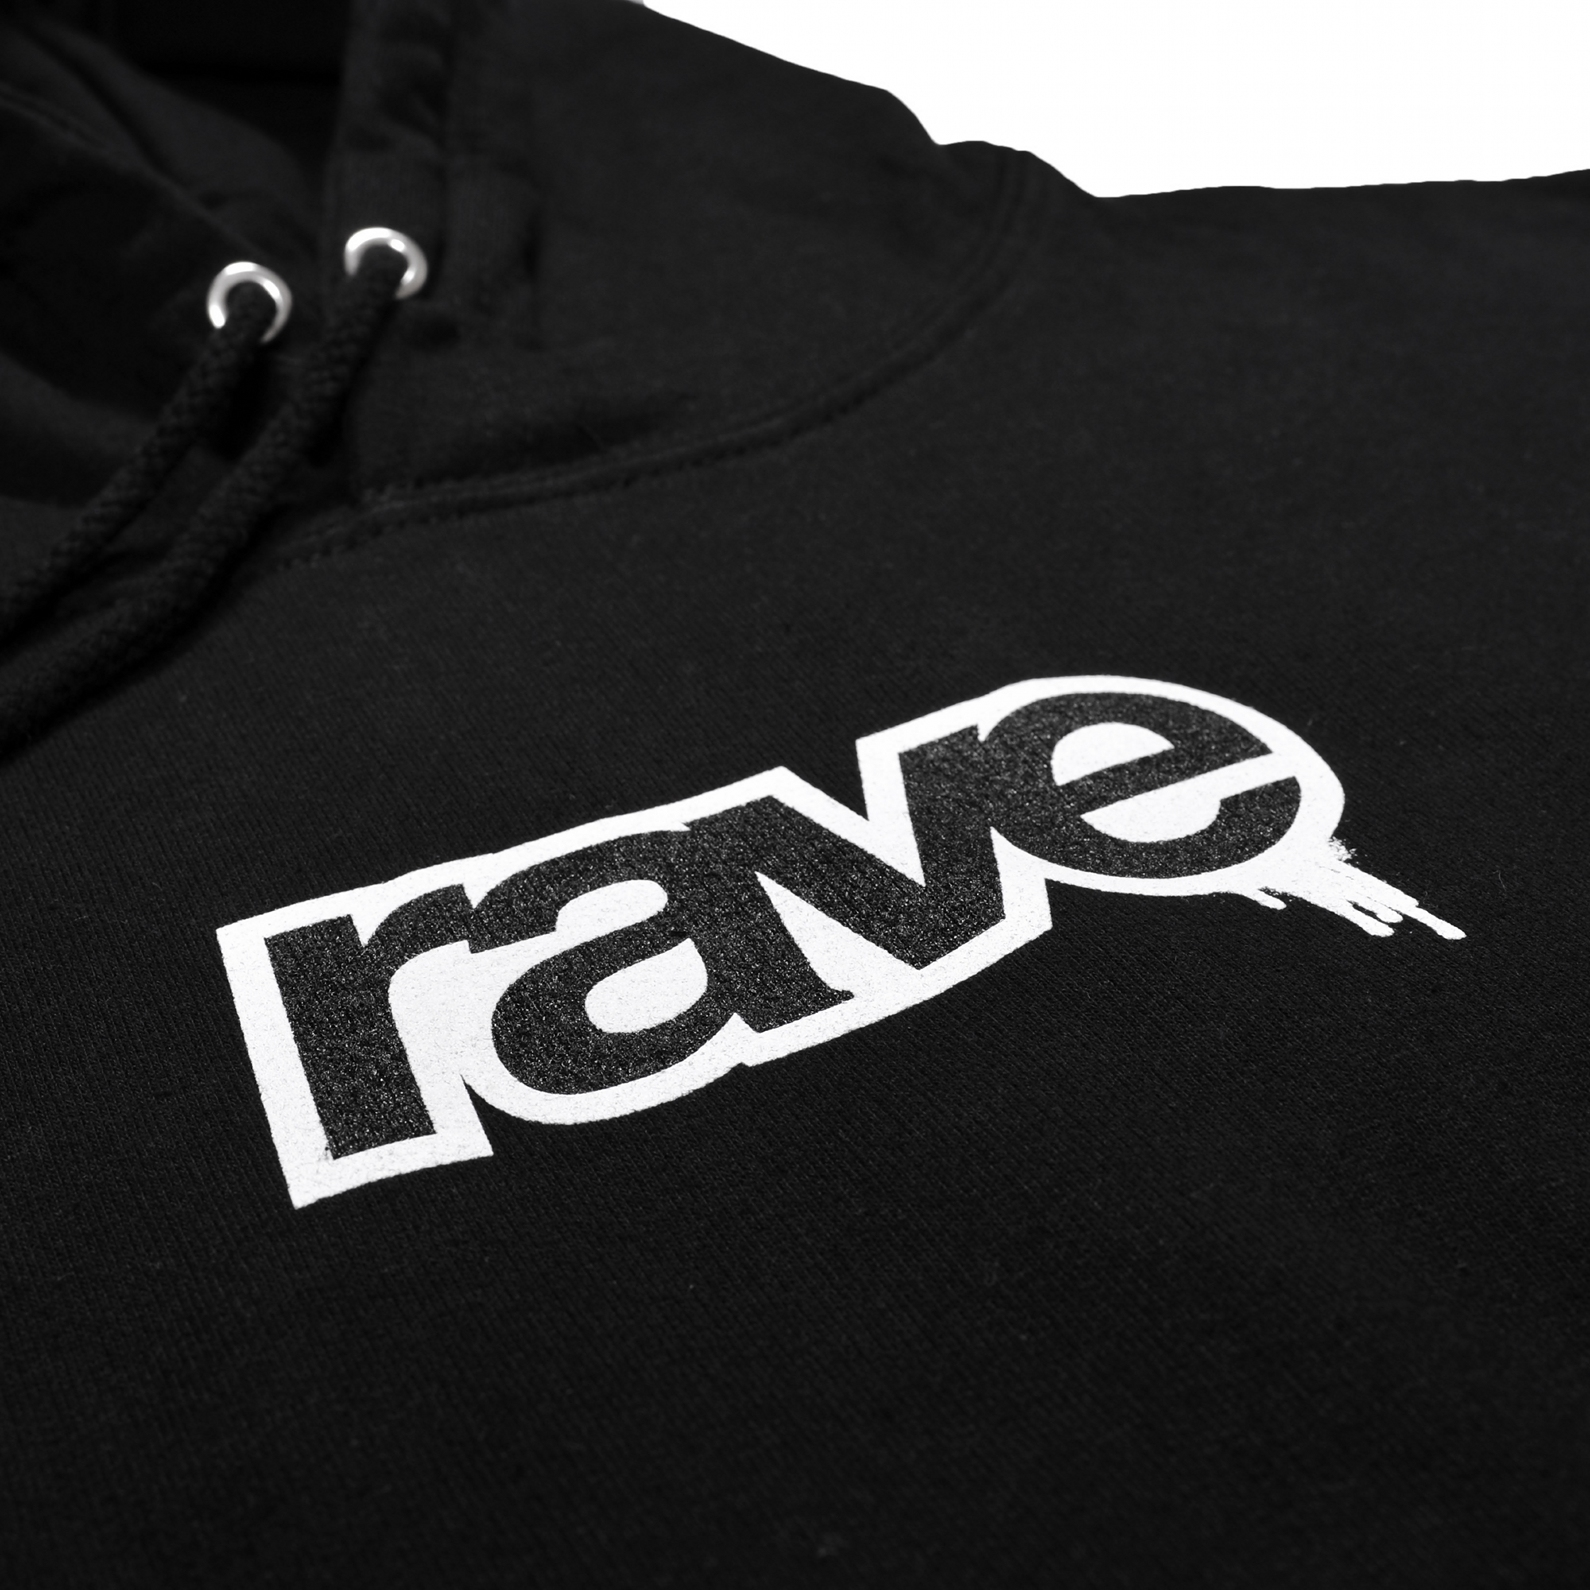 【RAVE SKATEBOARDS/レイブスケートボード】DROPS パーカー / BLACK